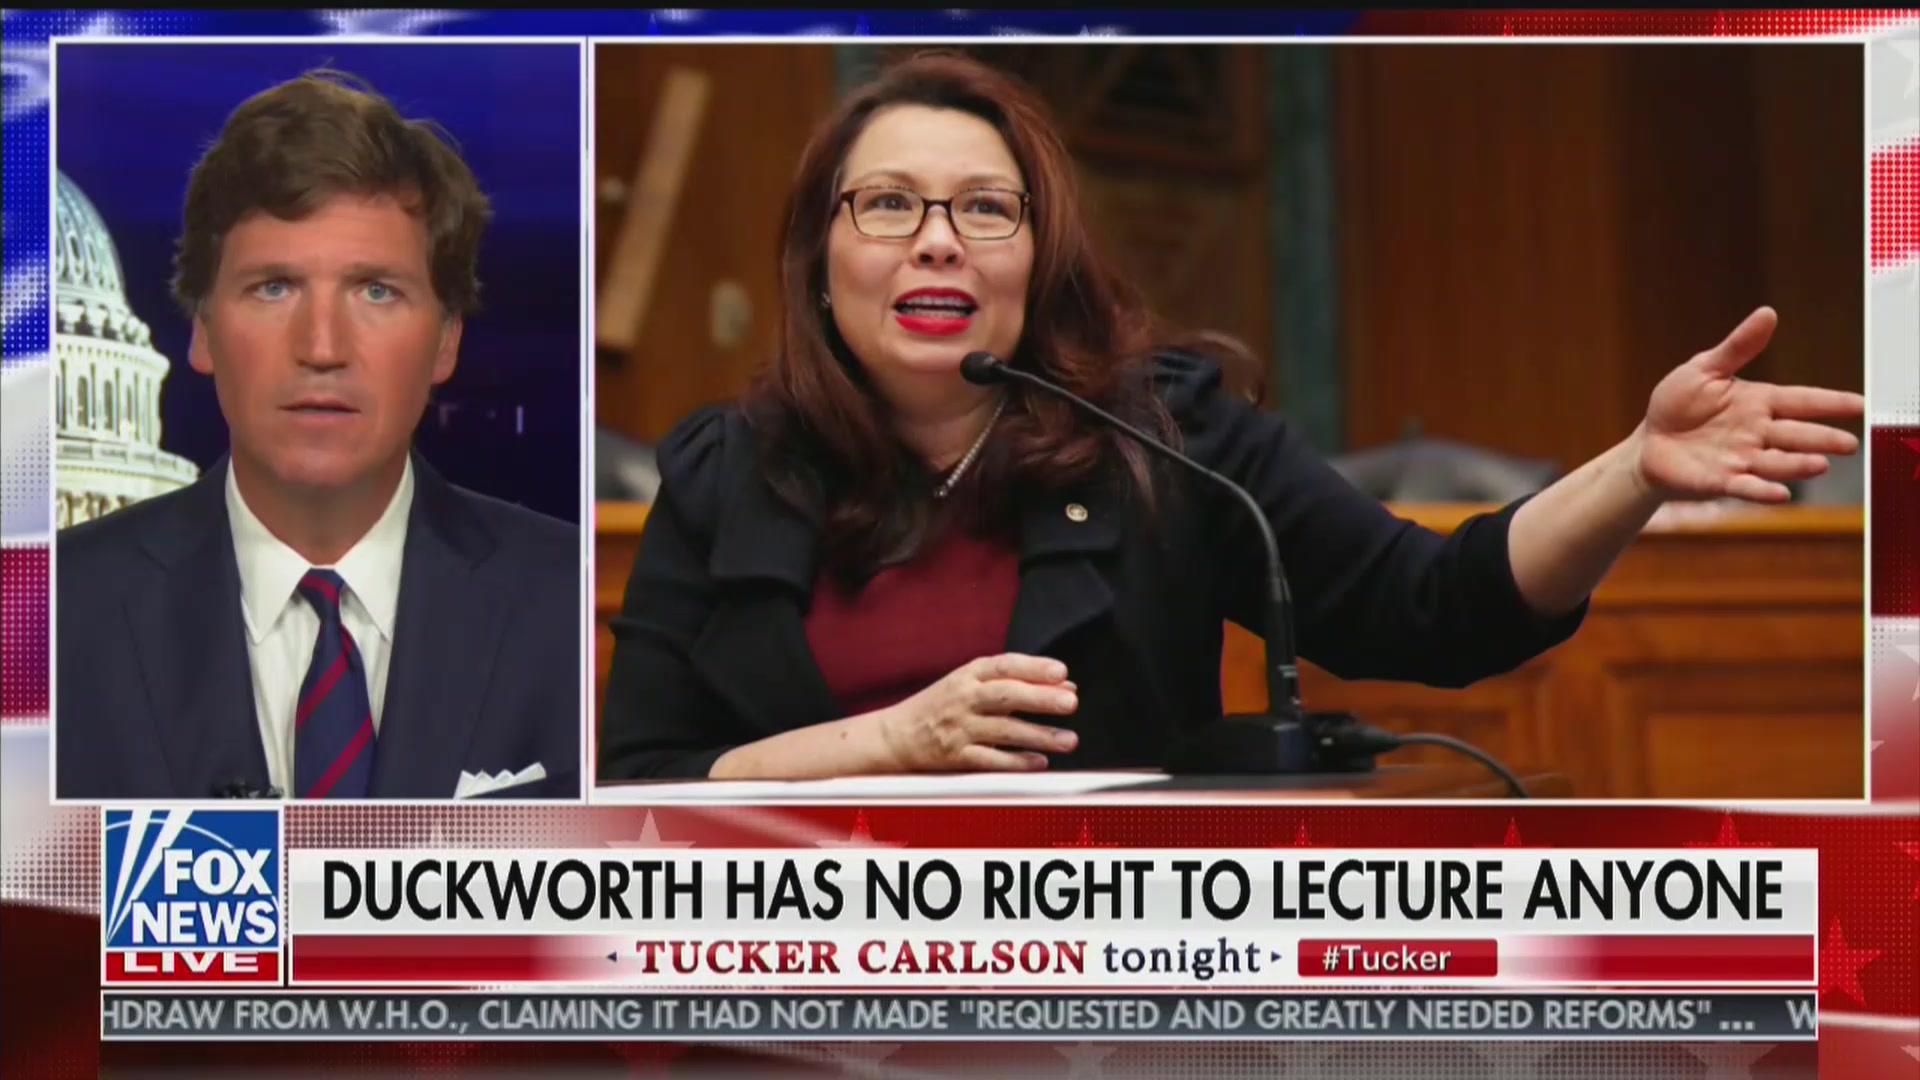 Tucker Carlson Once Again Attacks Tammy Duckworth, Claims She's a 'Coward' and 'Fraud'